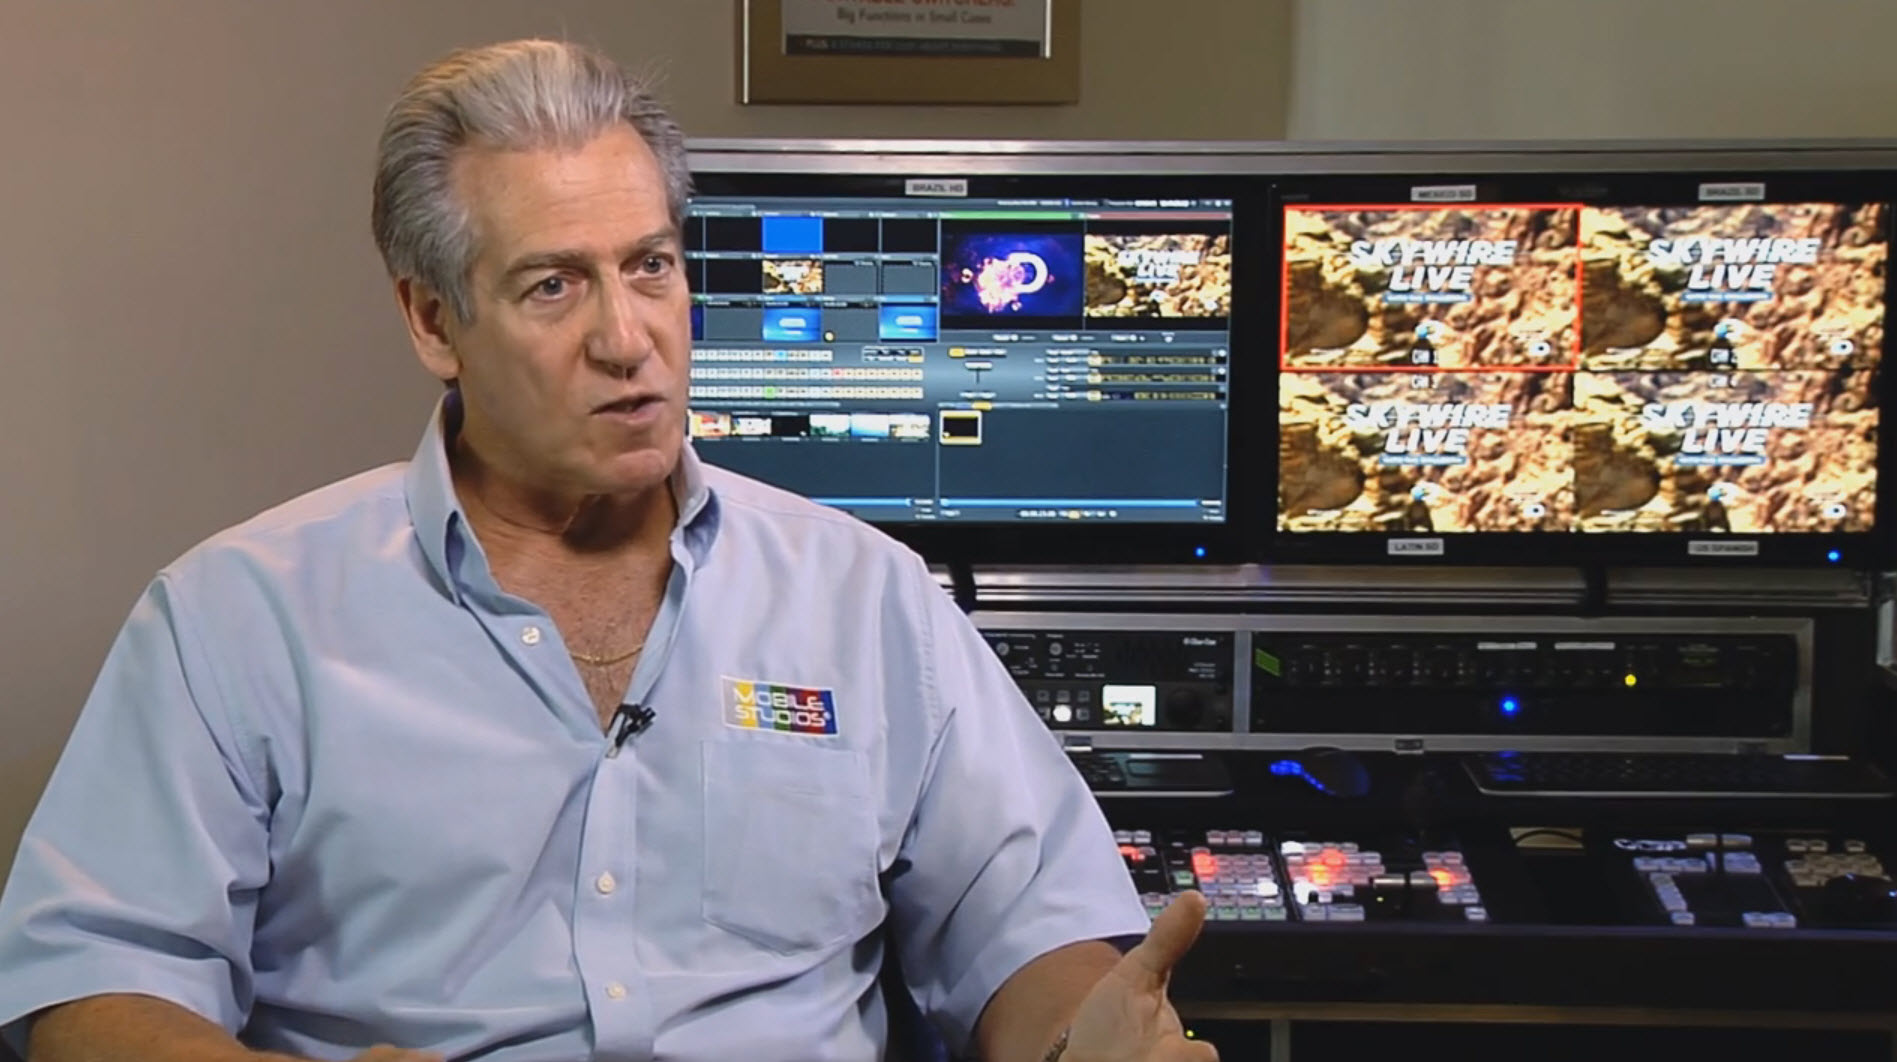 Mobile Studios President, Richard Rubin credits his crew and the reliability of six fully integrated TriCaster systems, for a flawless production of the SkyWire Live event.